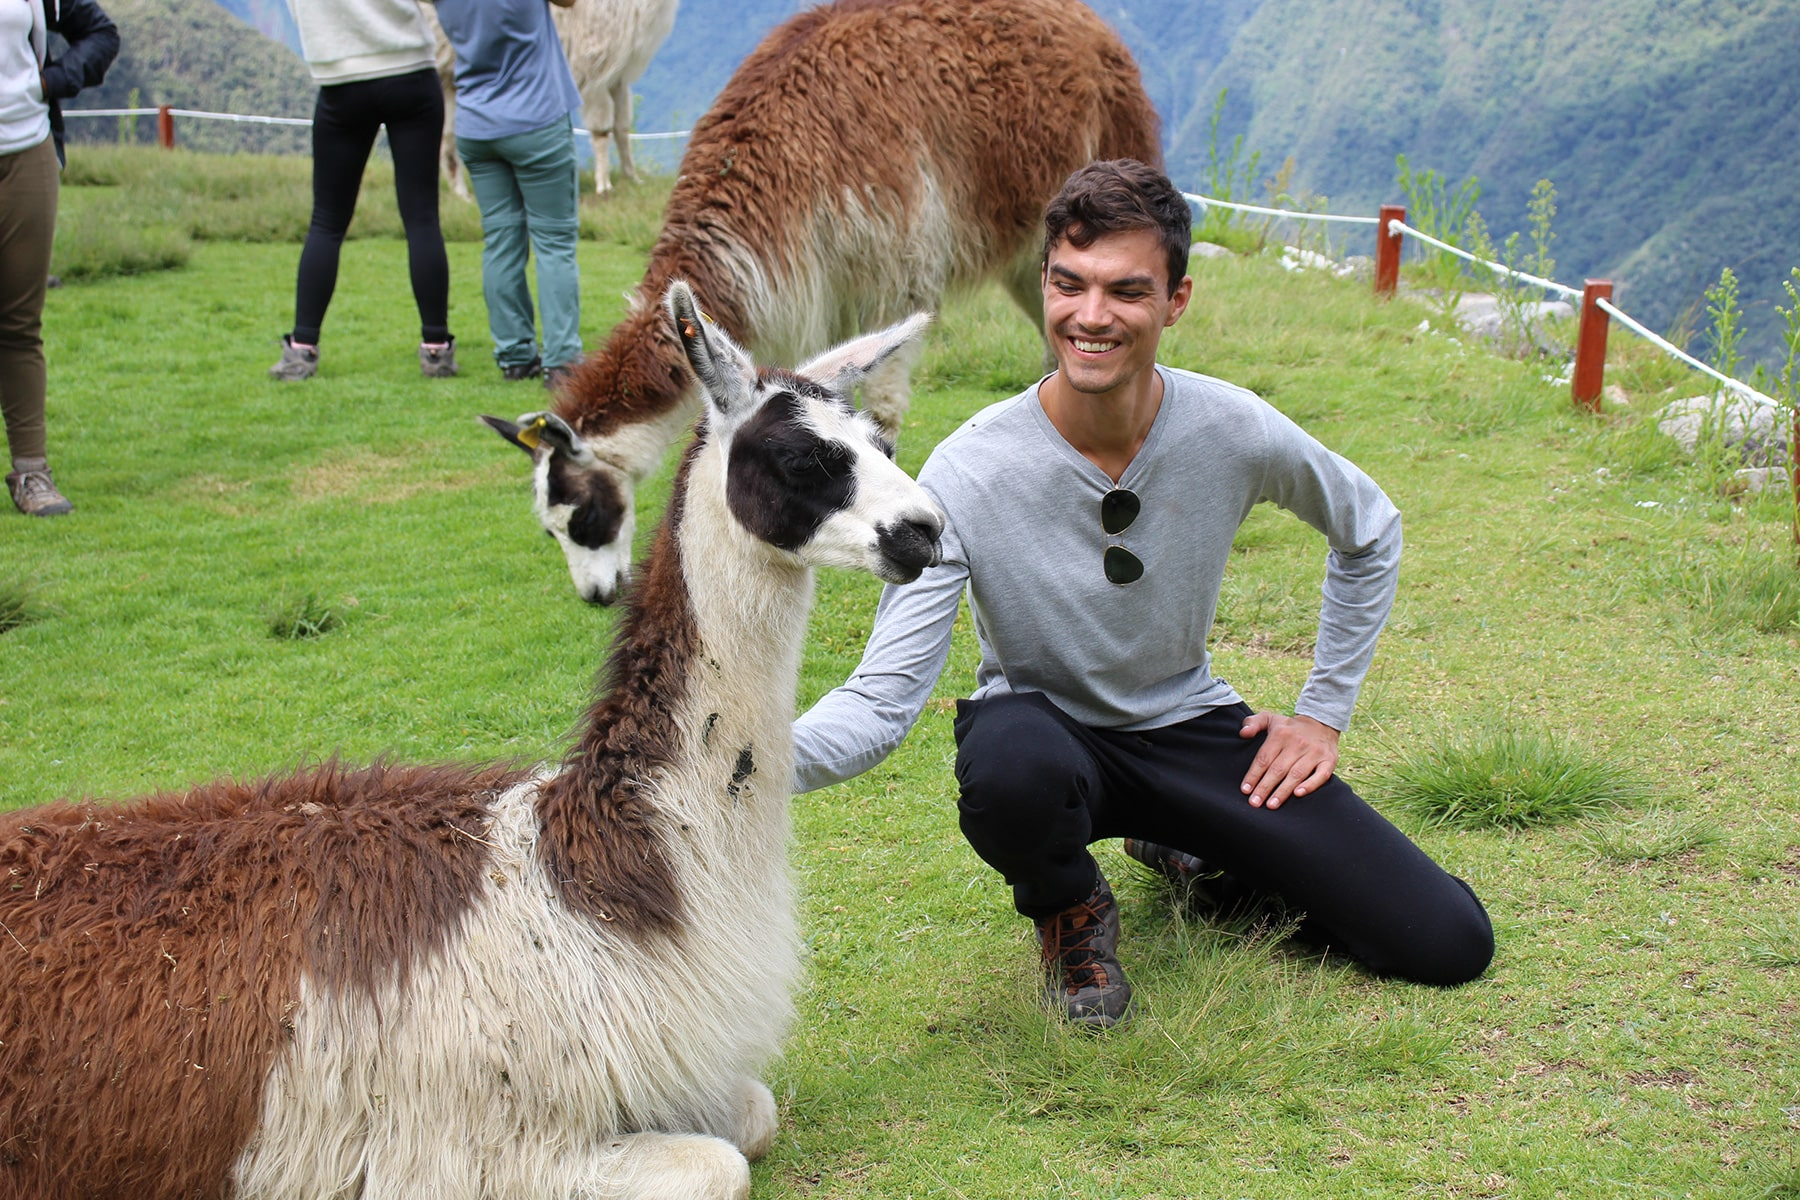 A smiling Florian with a llama